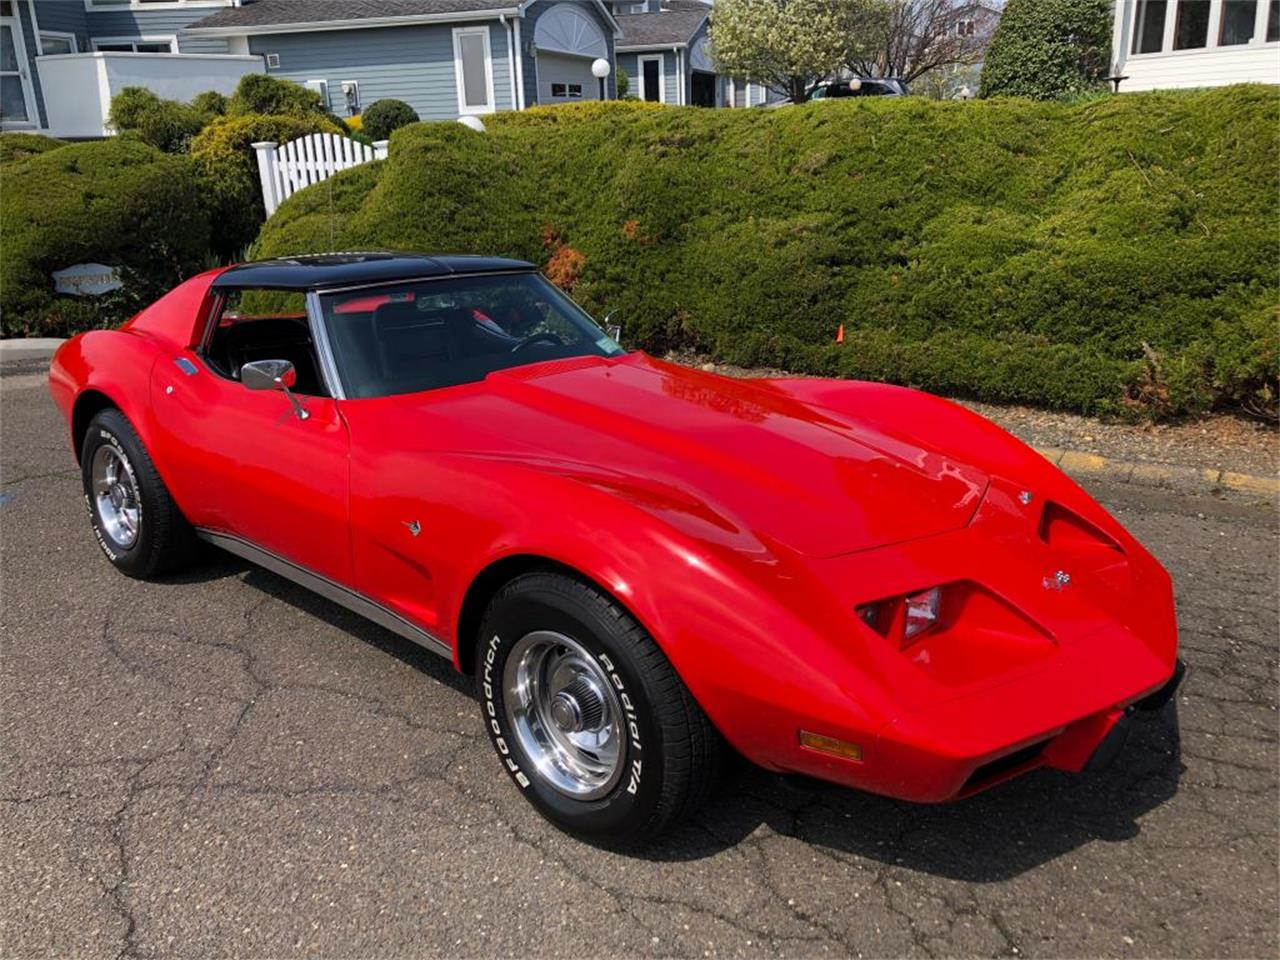 1975 Chevrolet Corvette (CC-1213531) for sale in Milford City, Connecticut